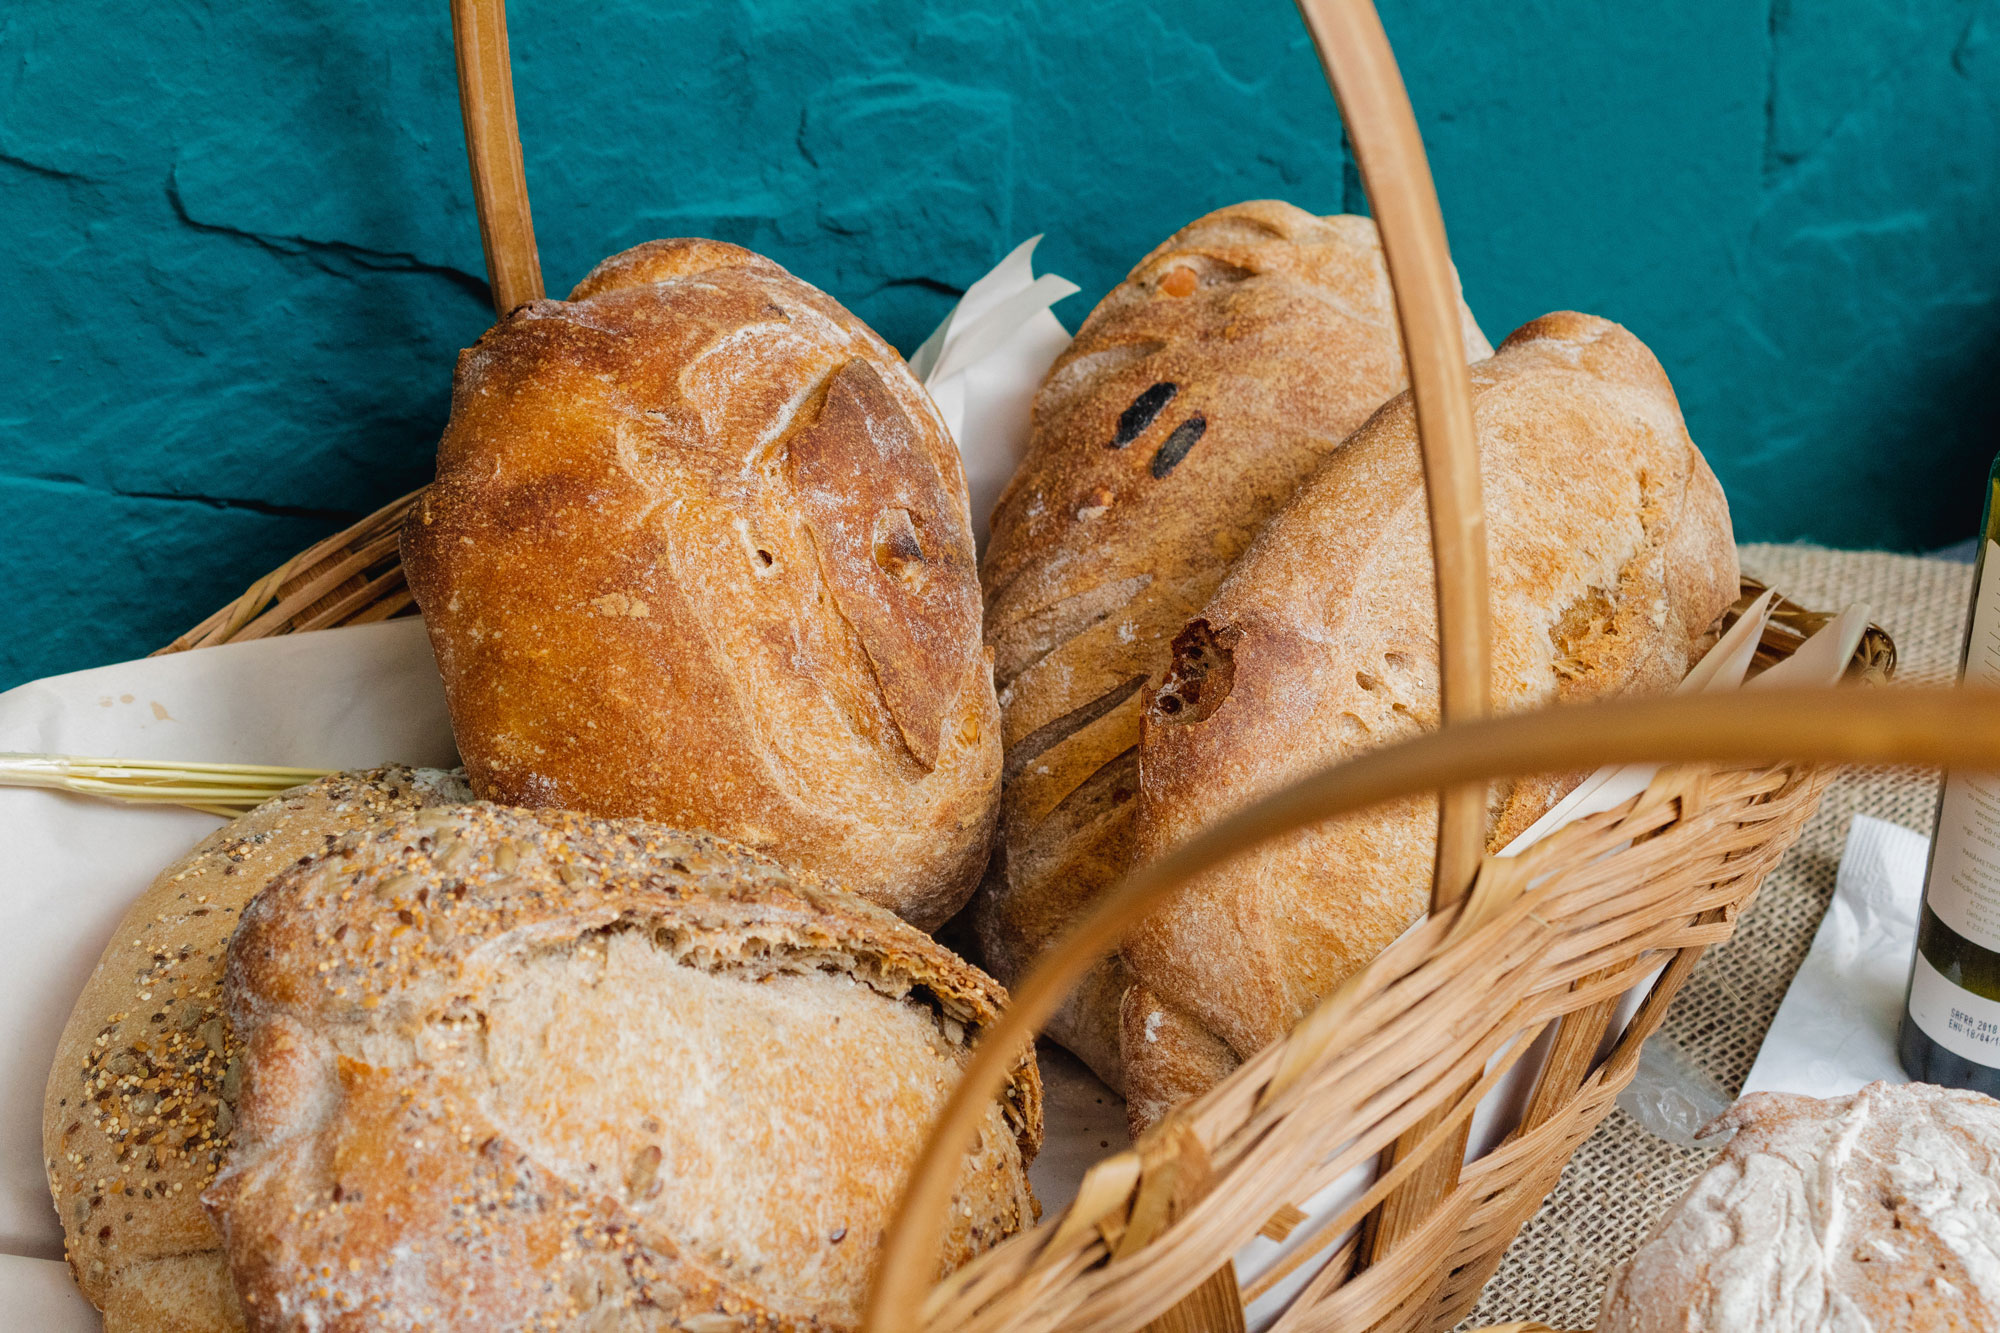 Is Gluten Really Bad For Your Body?